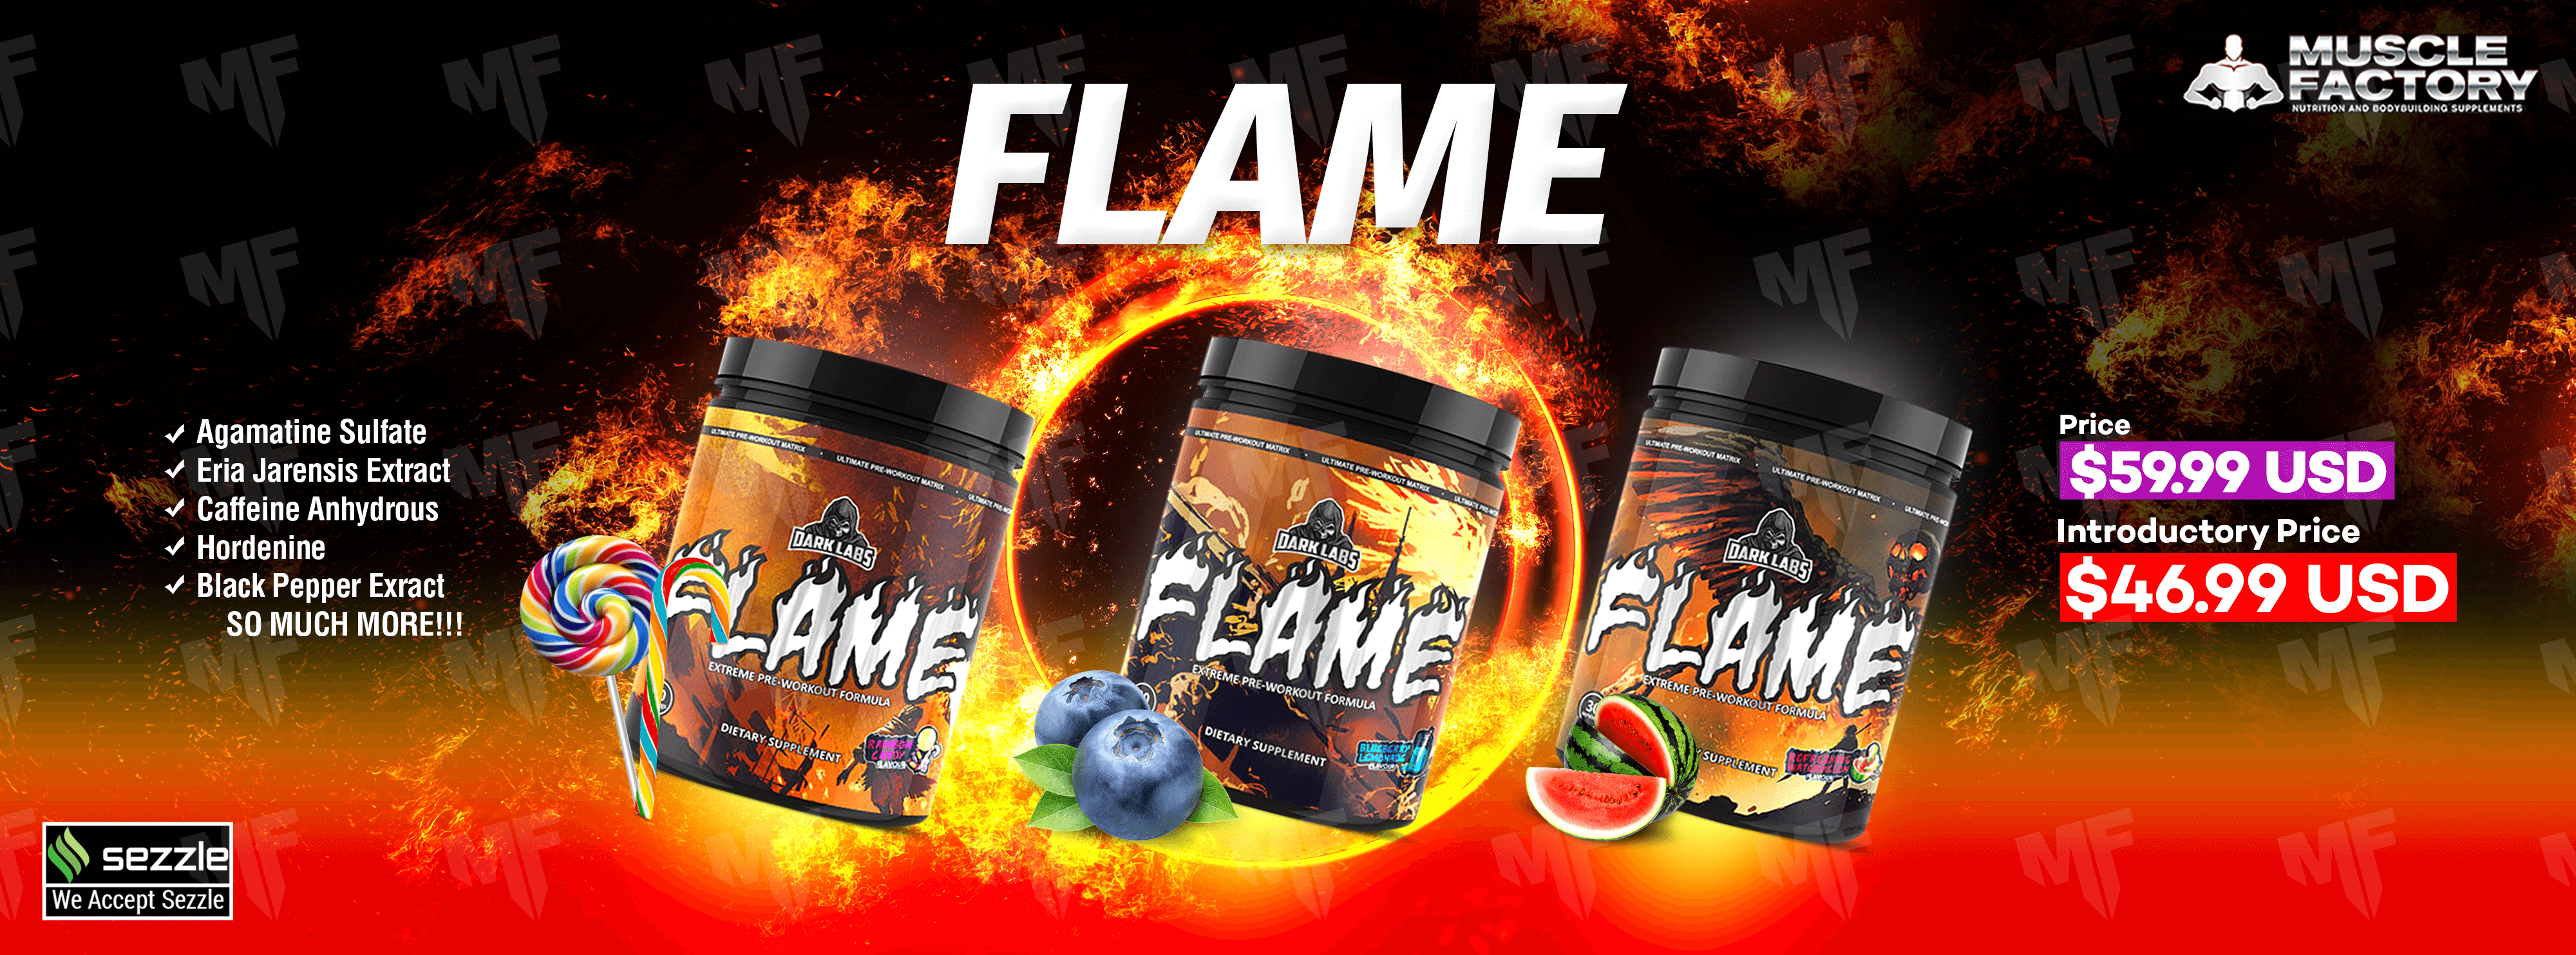 Flame Pre-Workout Banner MF